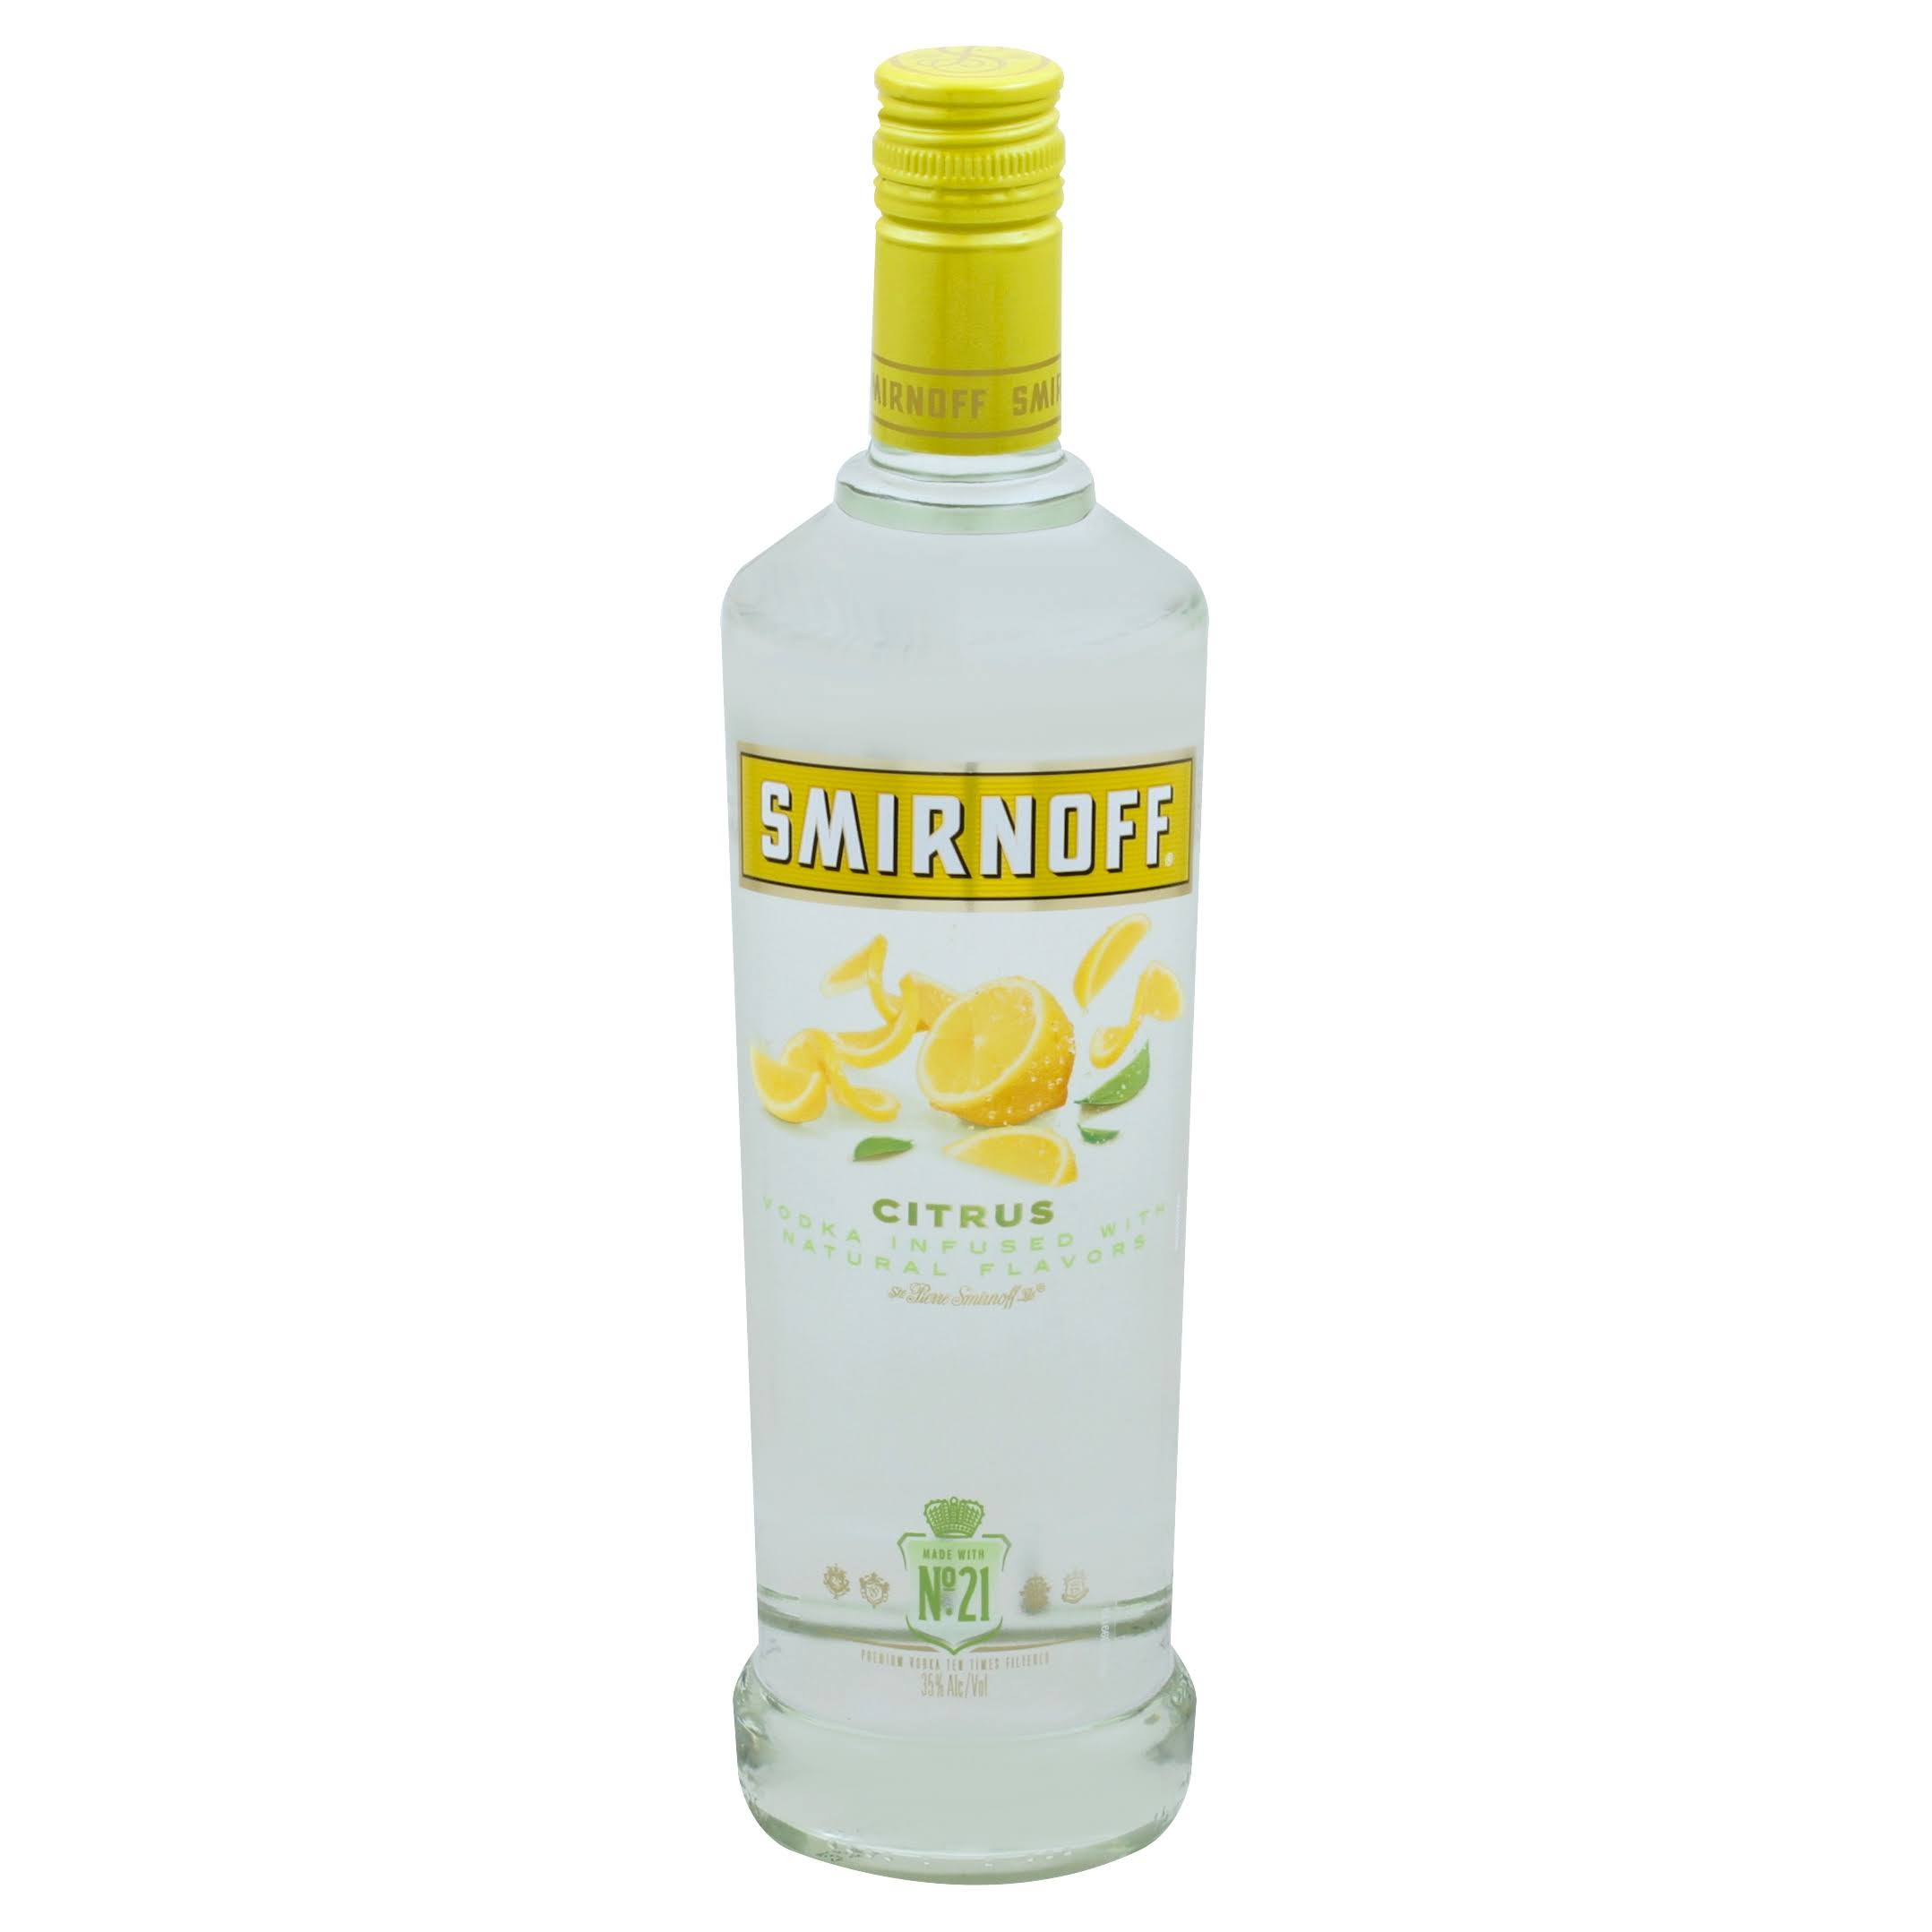 Smirnoff Vodka, Citrus - 750 ml